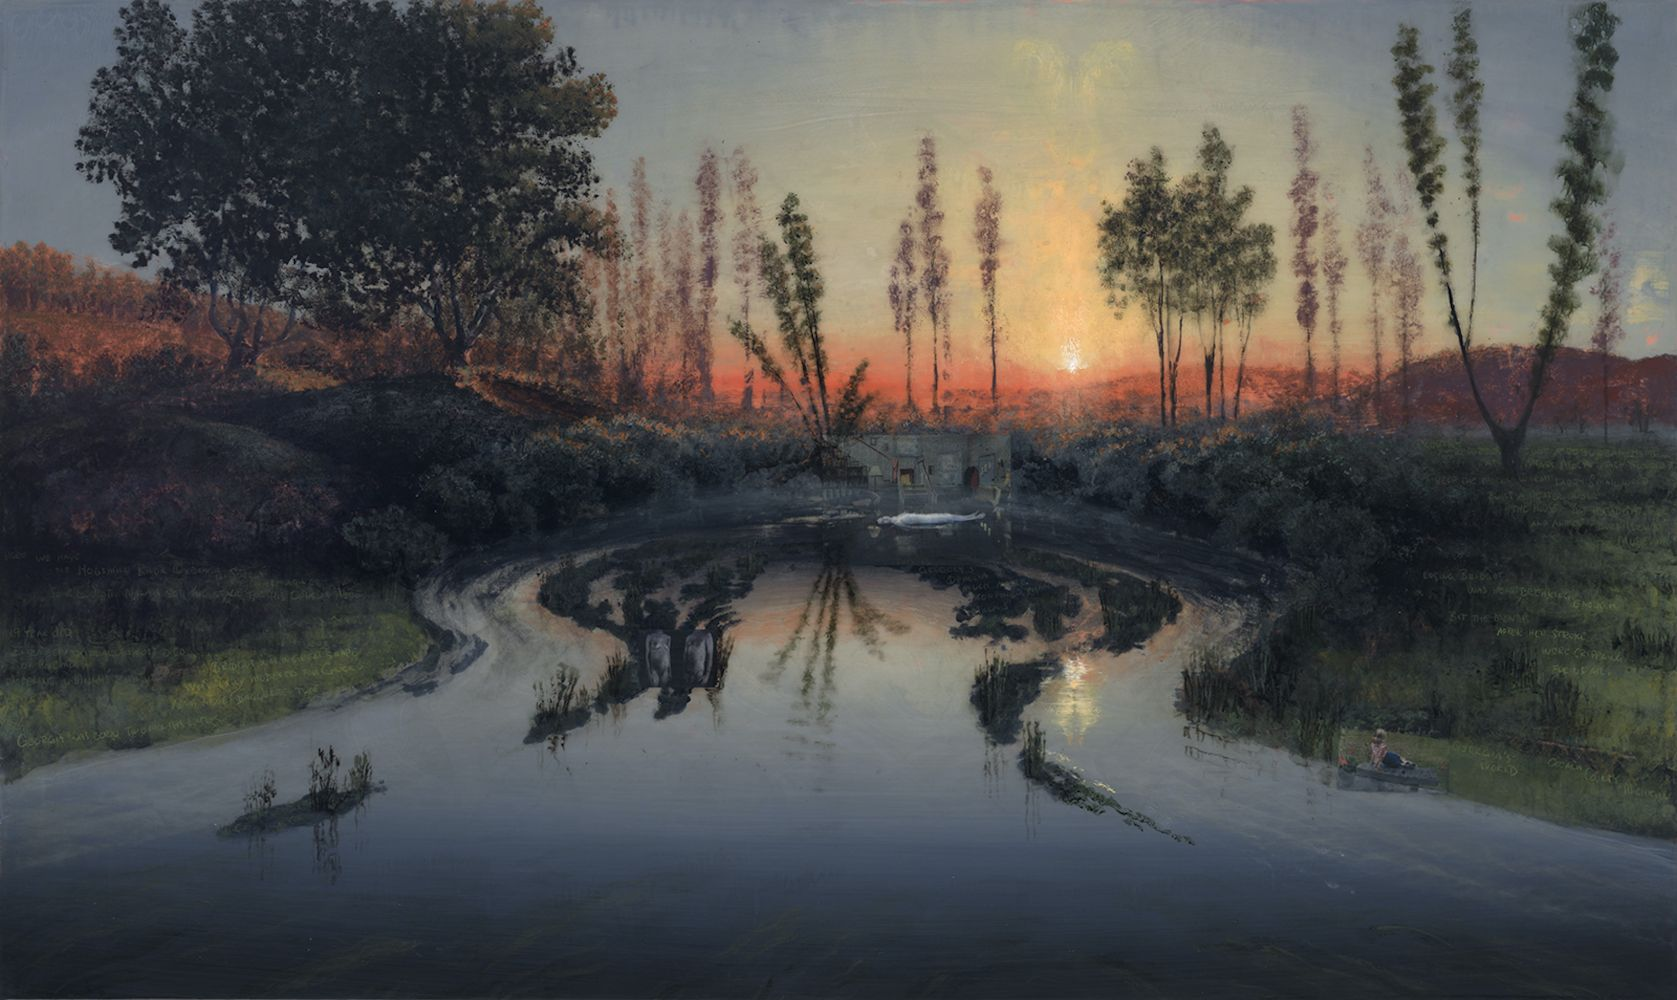 Landscape painting depicting the Hogsmill River Oxbow and the reflection of the sunset by Stephen Hannock.